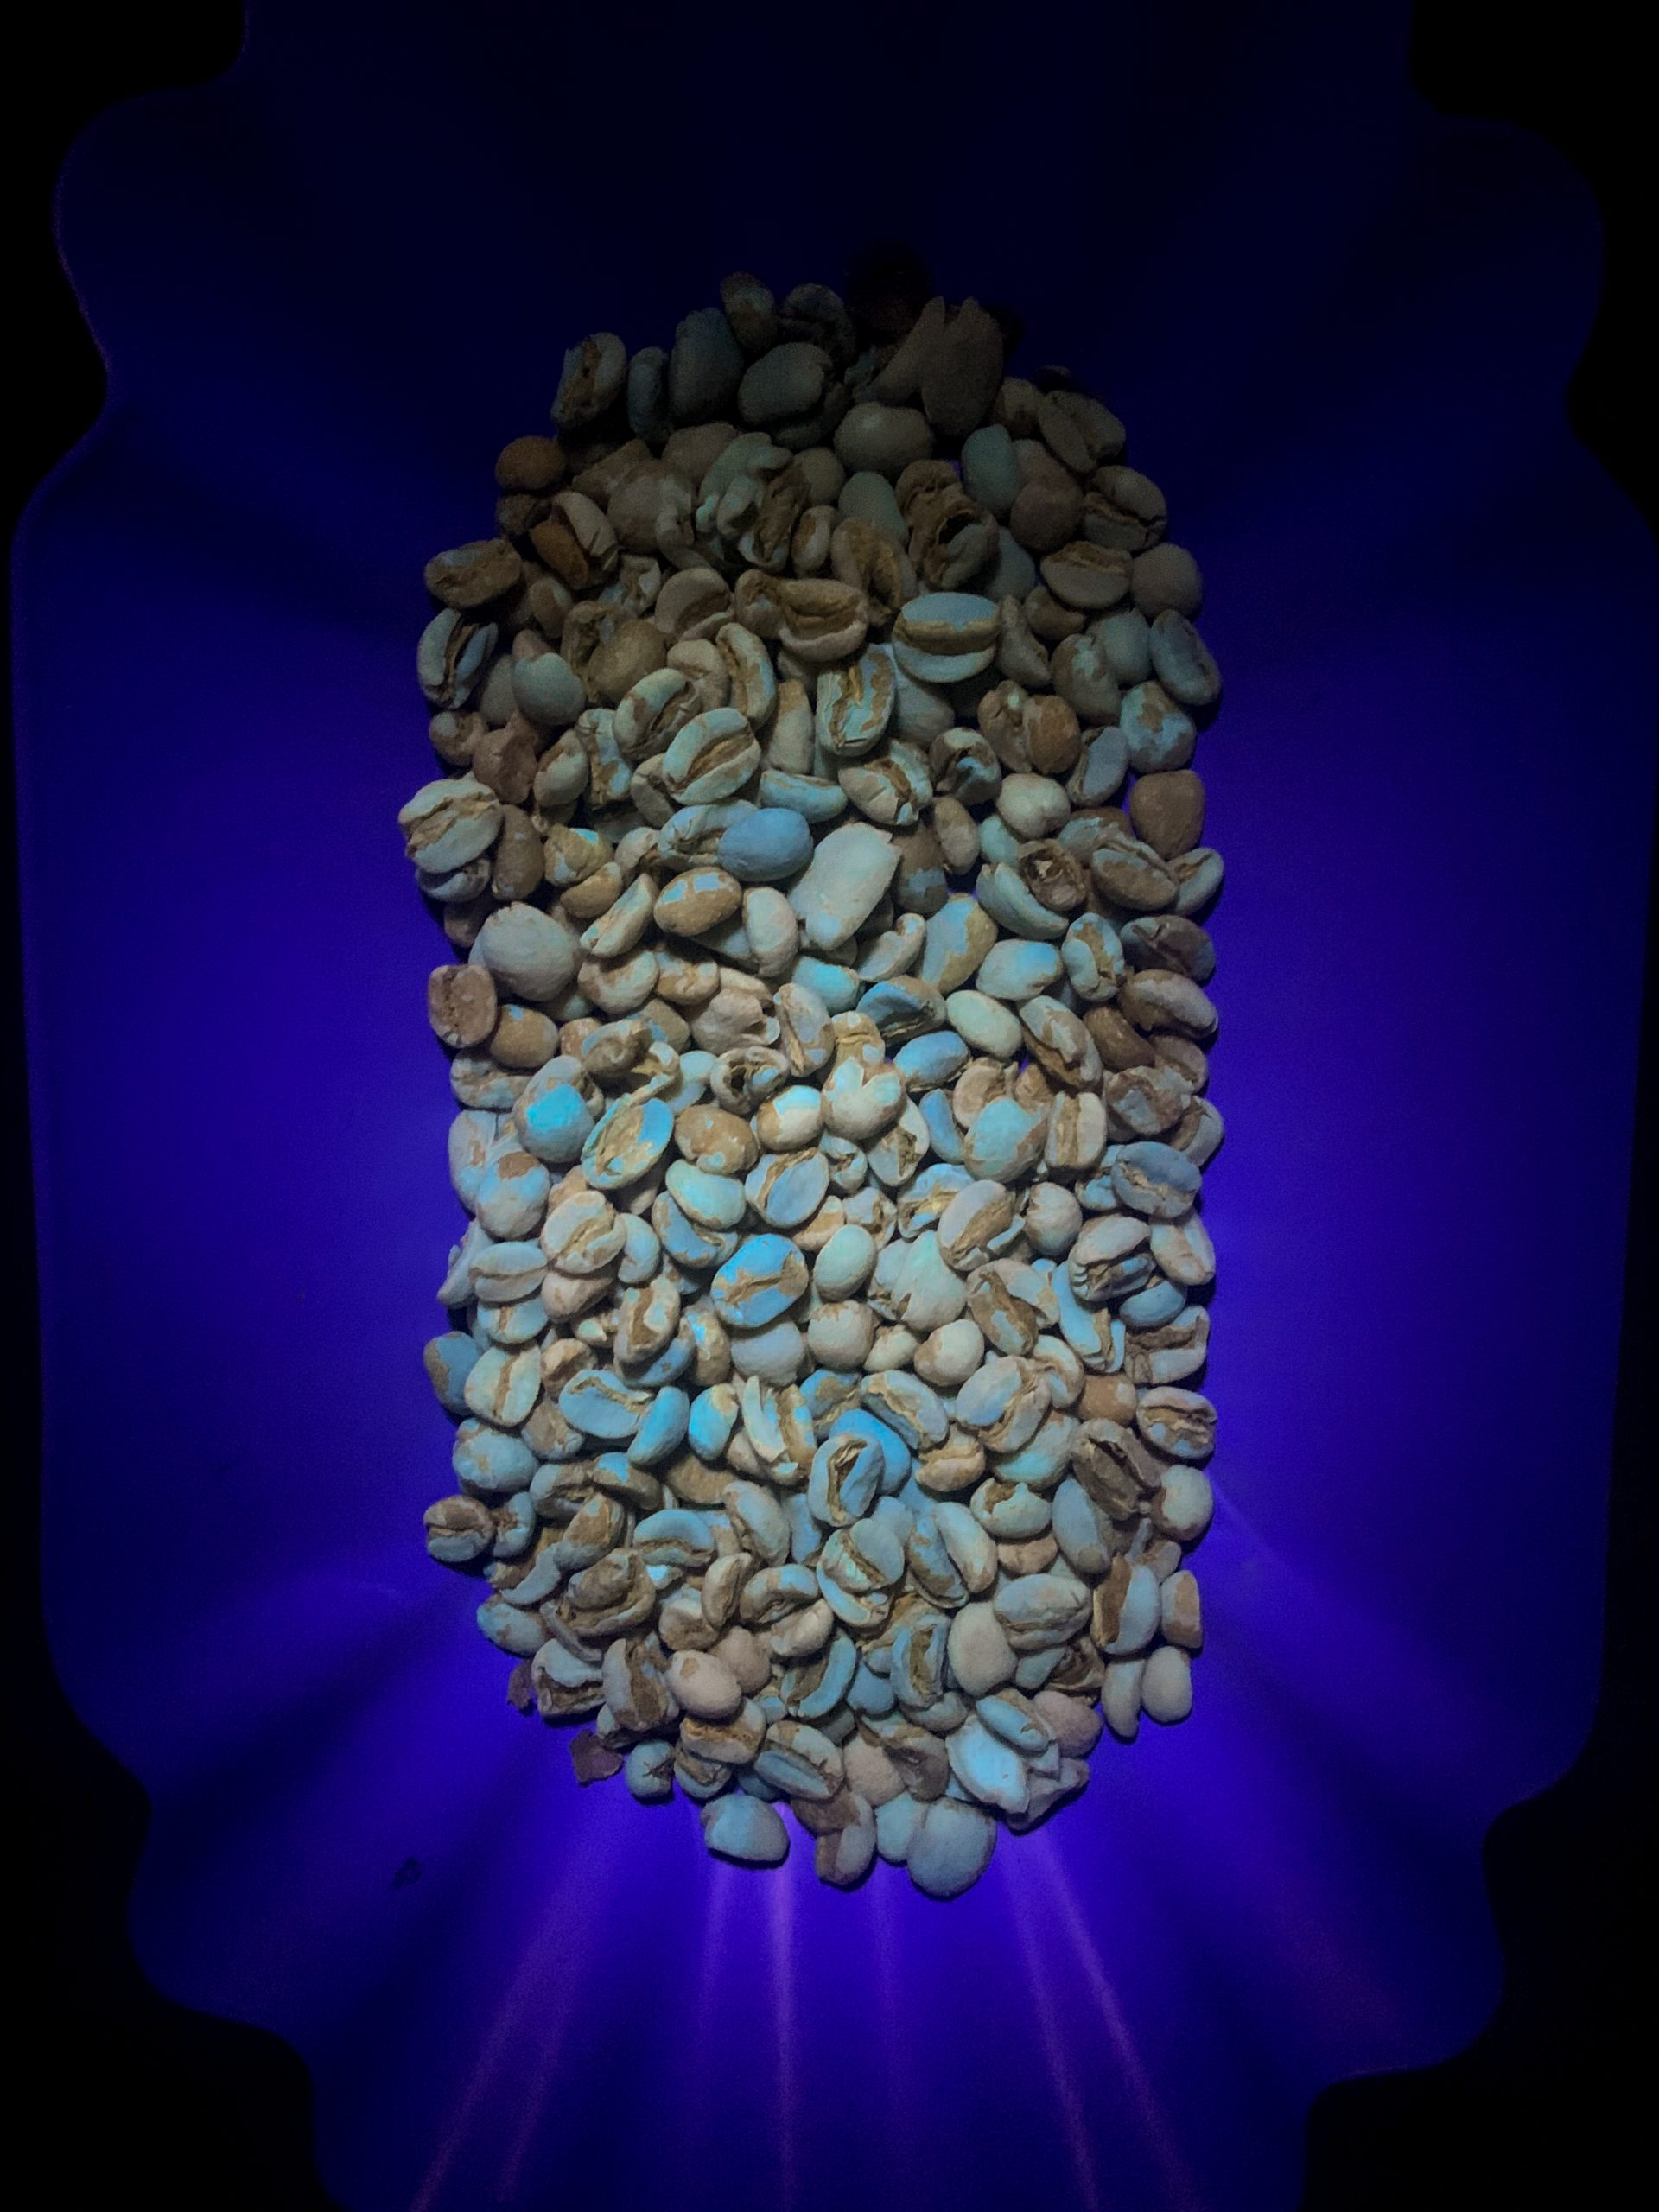 Coffee under ultraviolet light